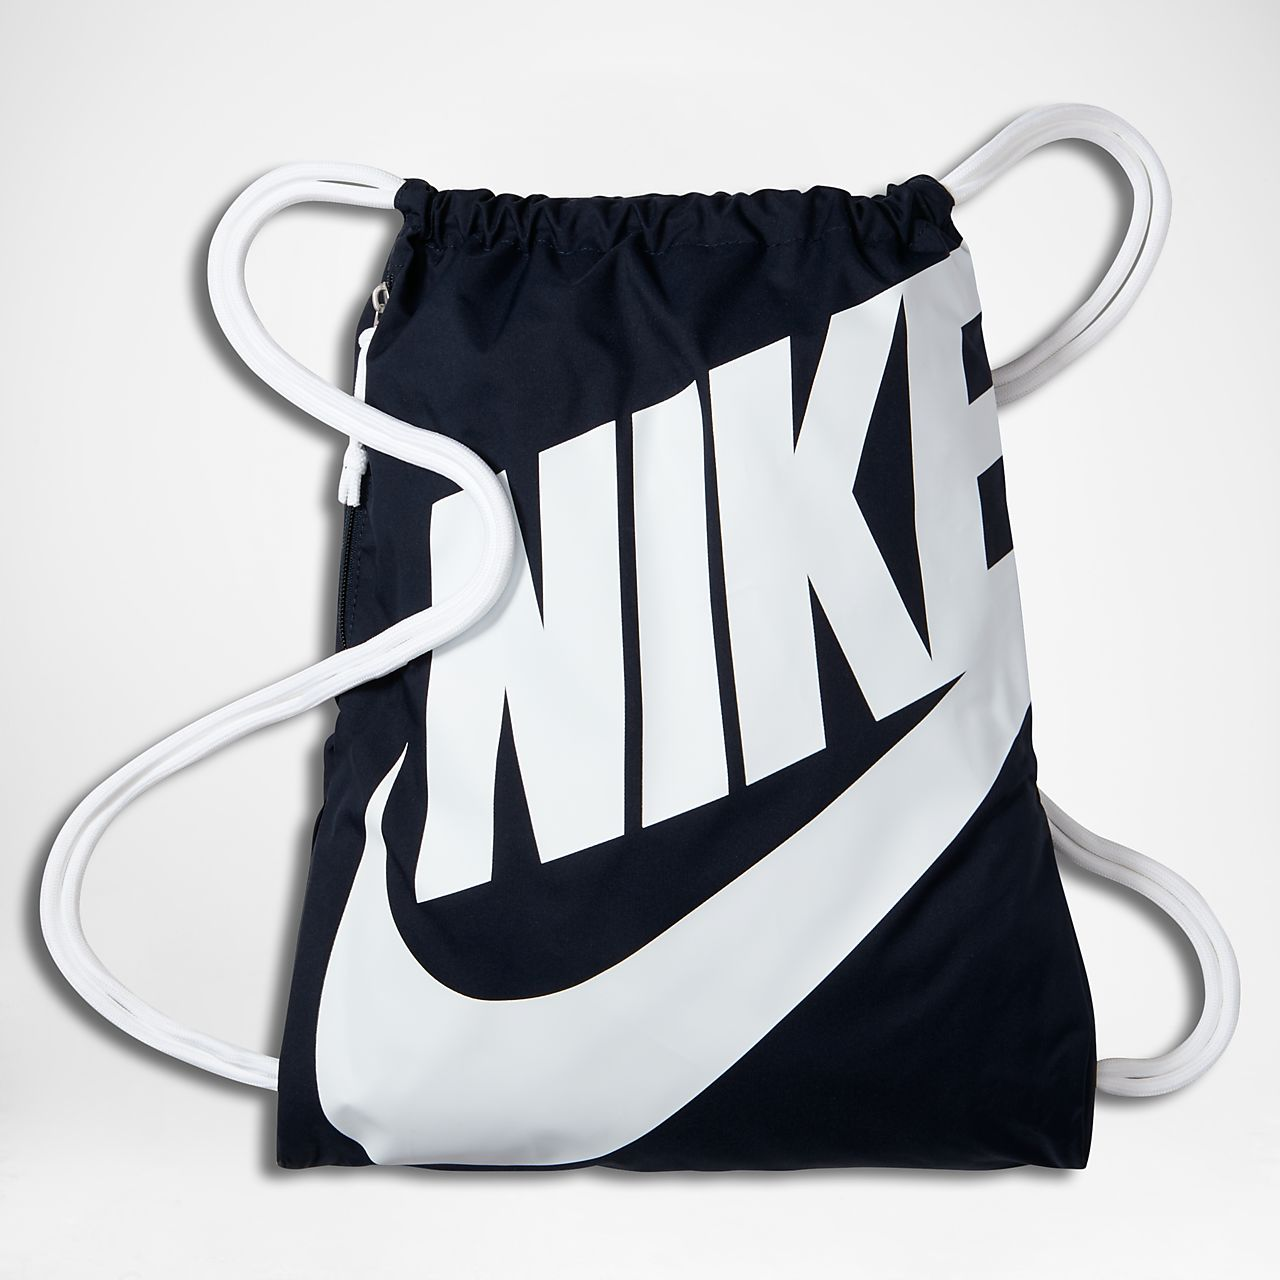 detailed pictures 2c668 f6f8d Gymsack. Nike Sportswear Heritage